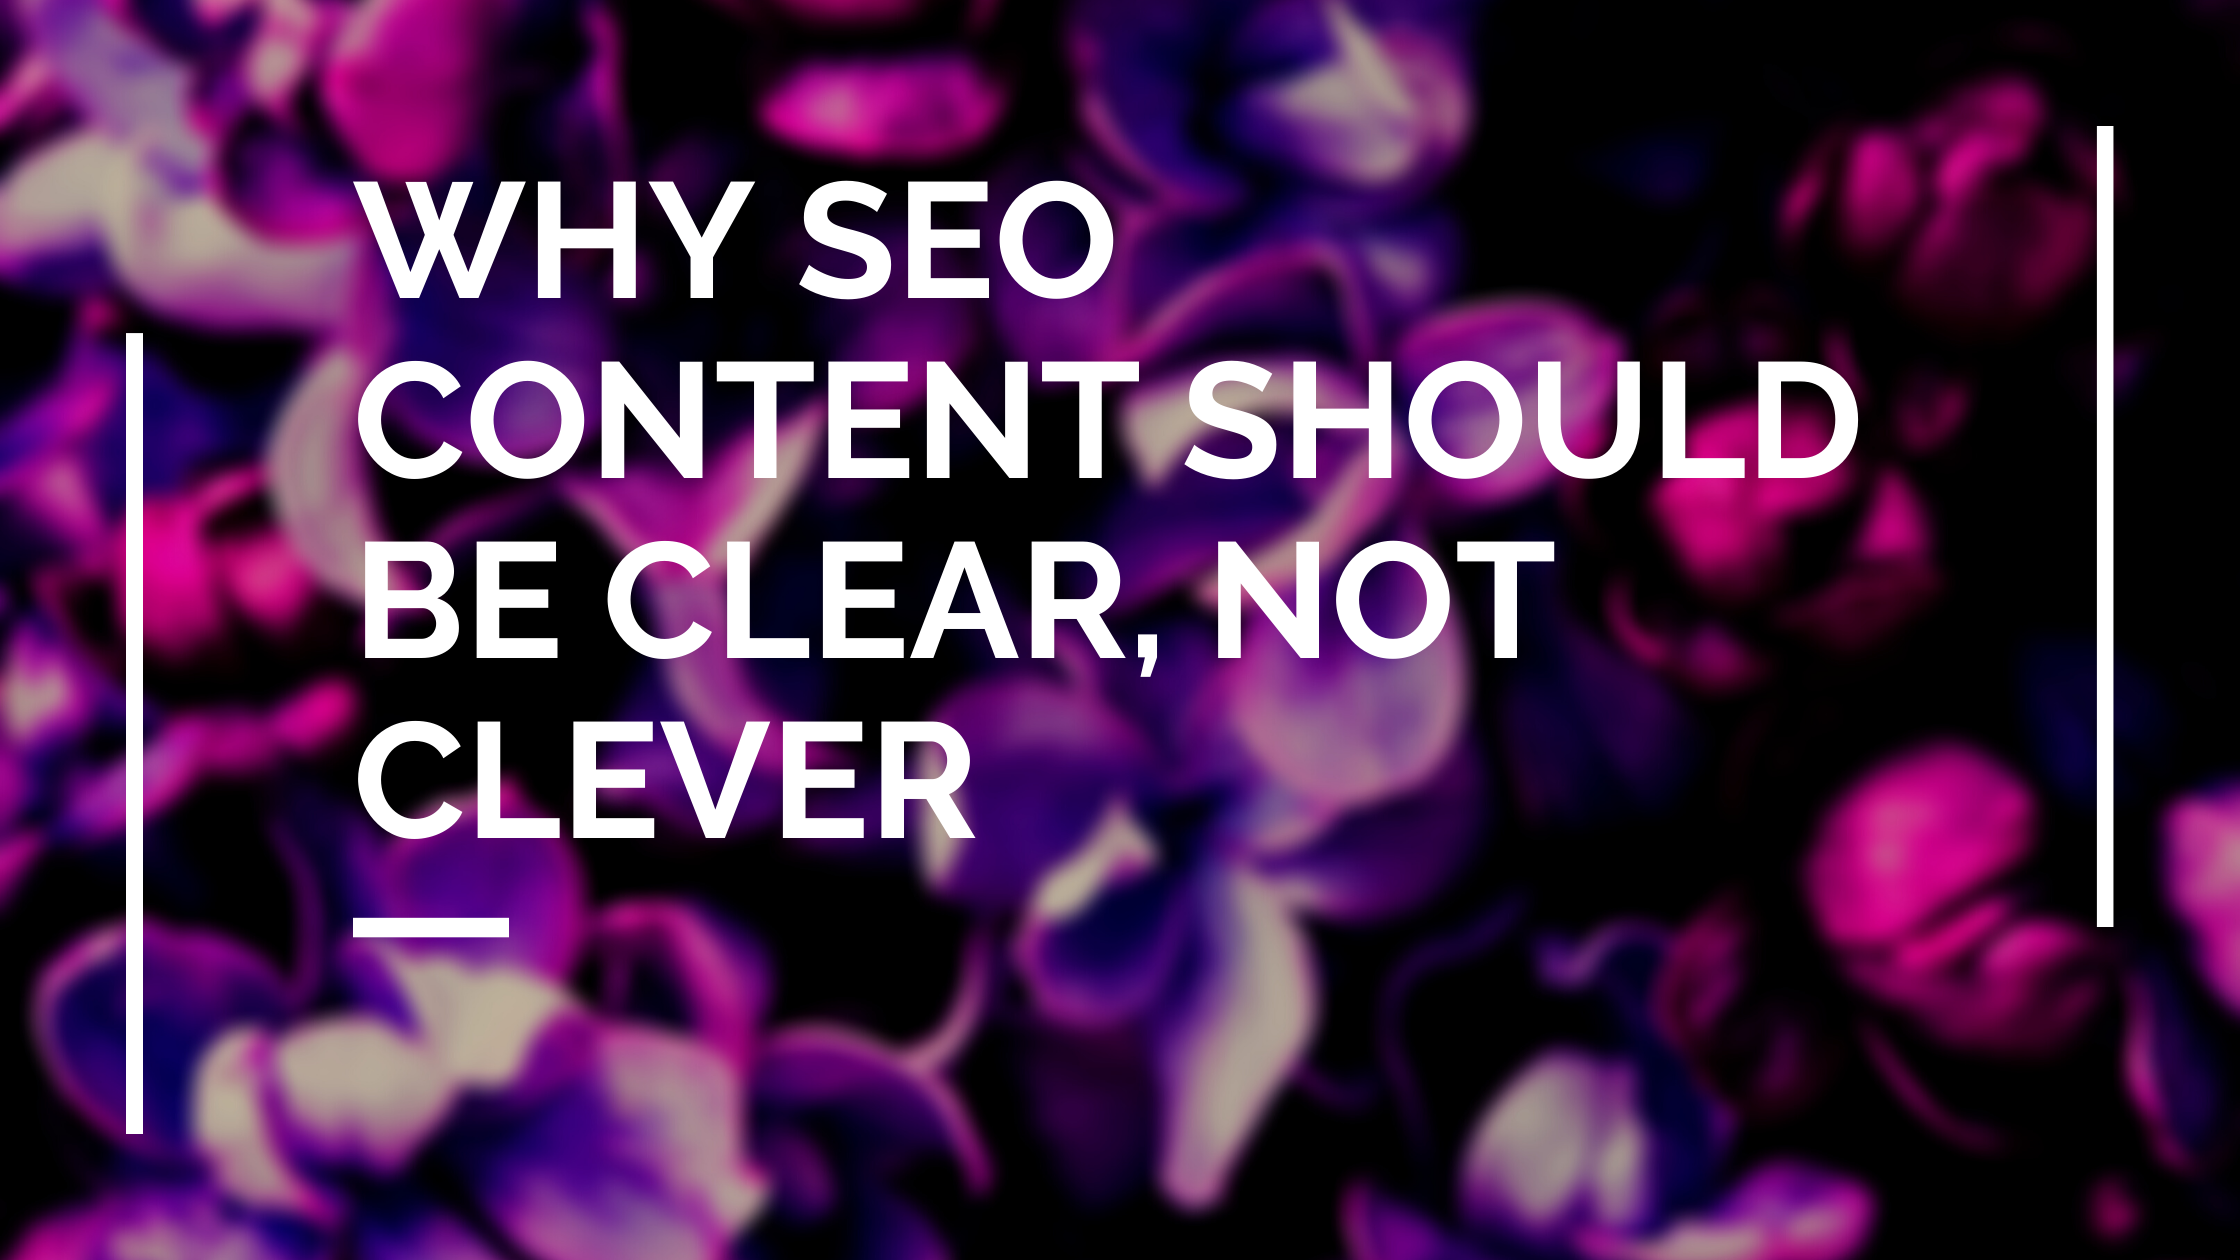 why seo content should be clear not clever title image